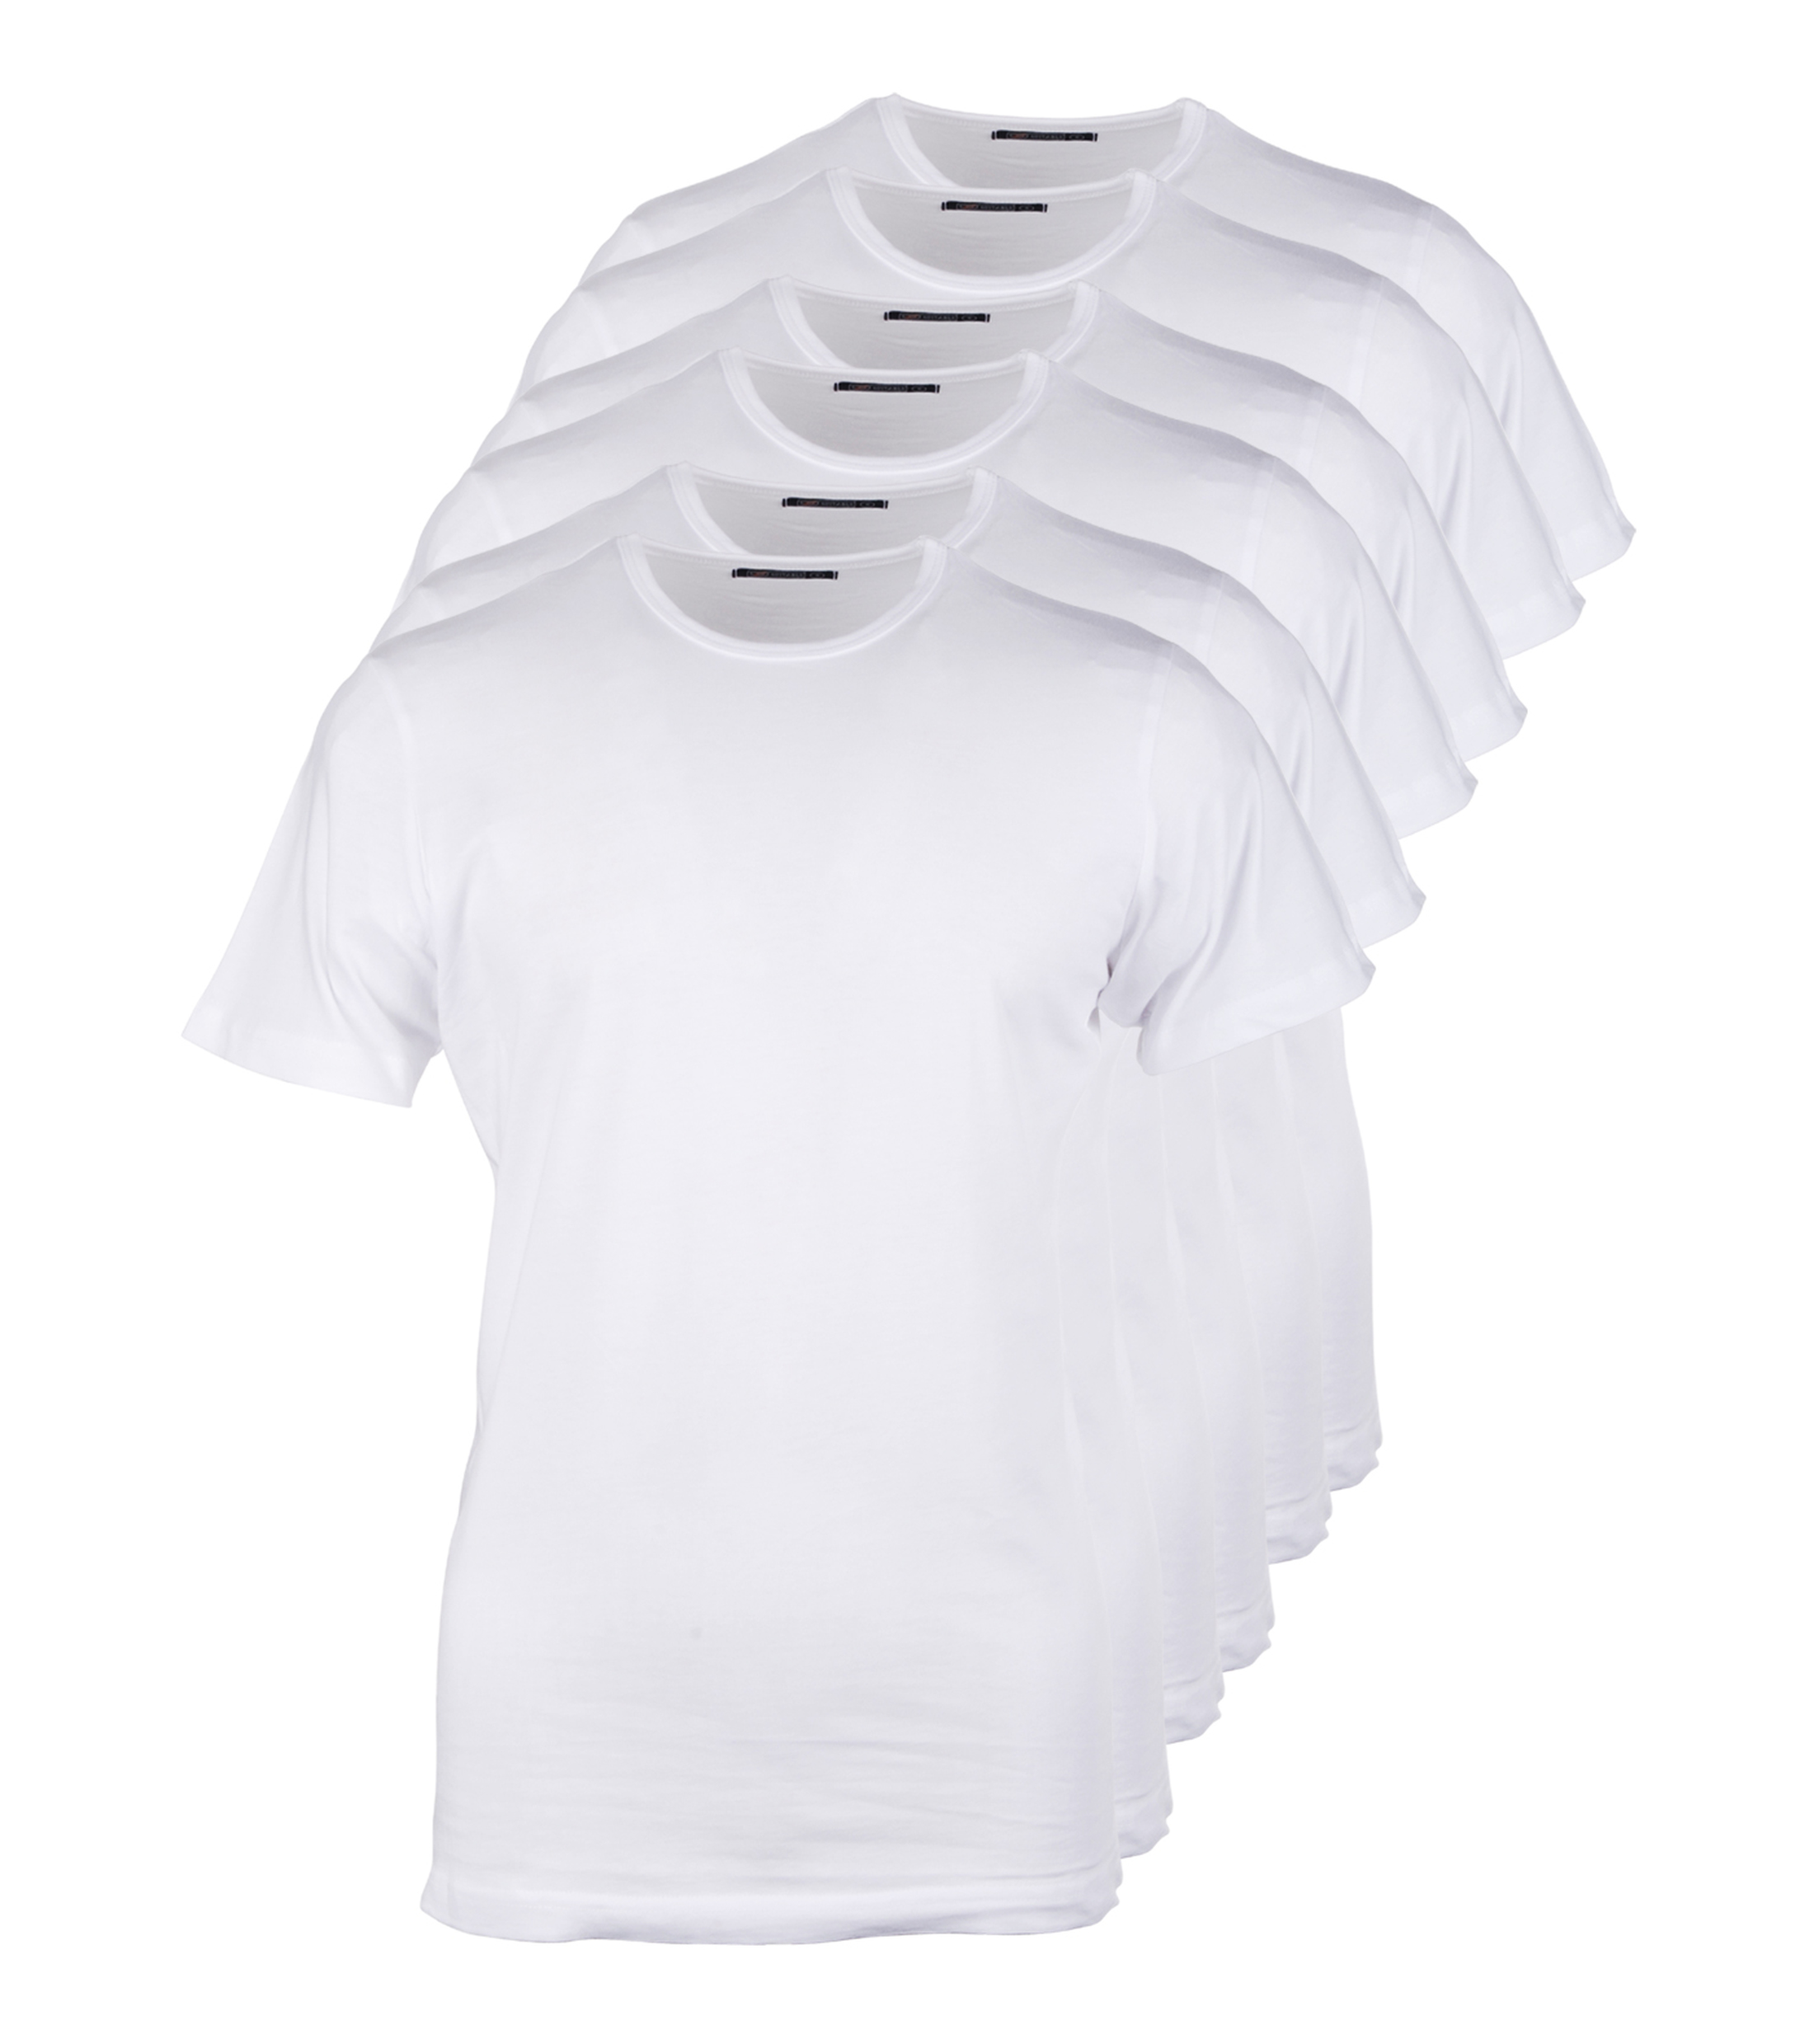 Wit t shirts 6pack witte t shirts kopen suitableshop for Designhotel maastricht comfort xl